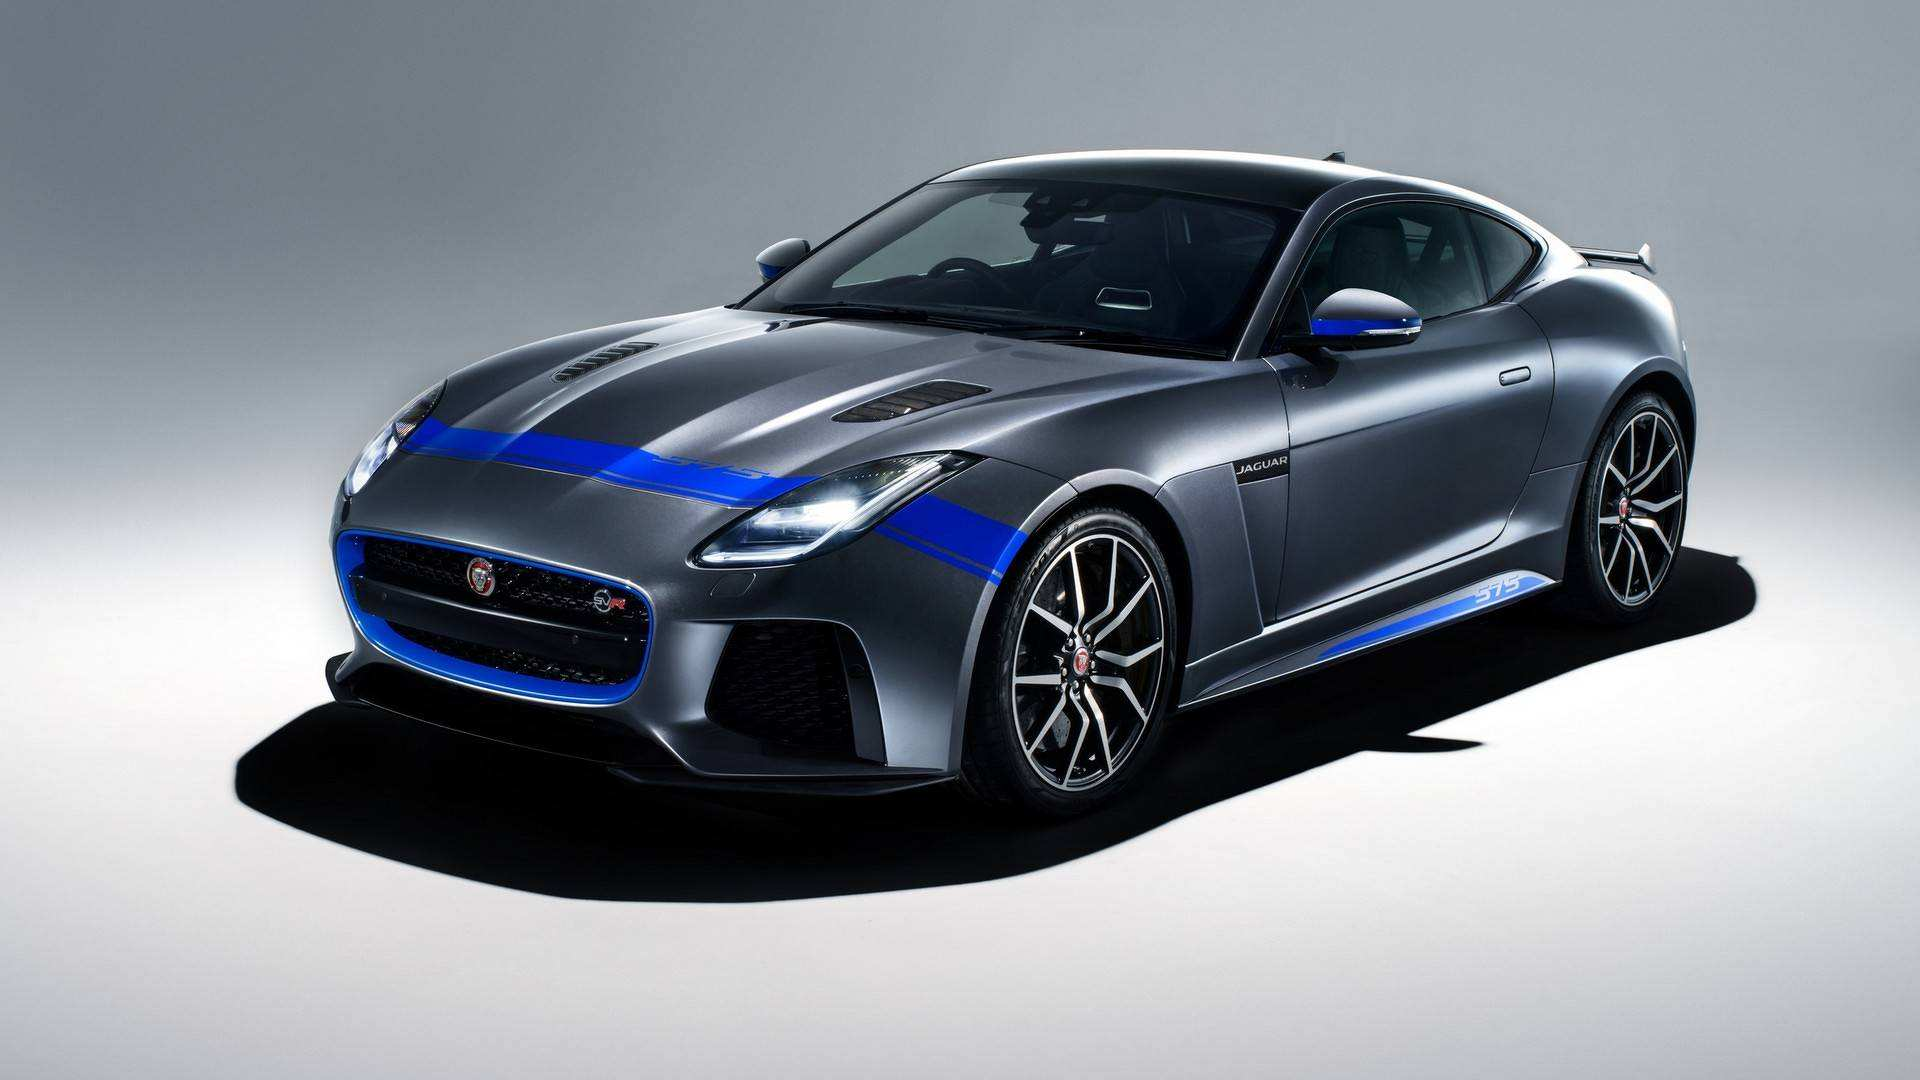 92 The Best 2020 Jaguar F Type Wallpaper